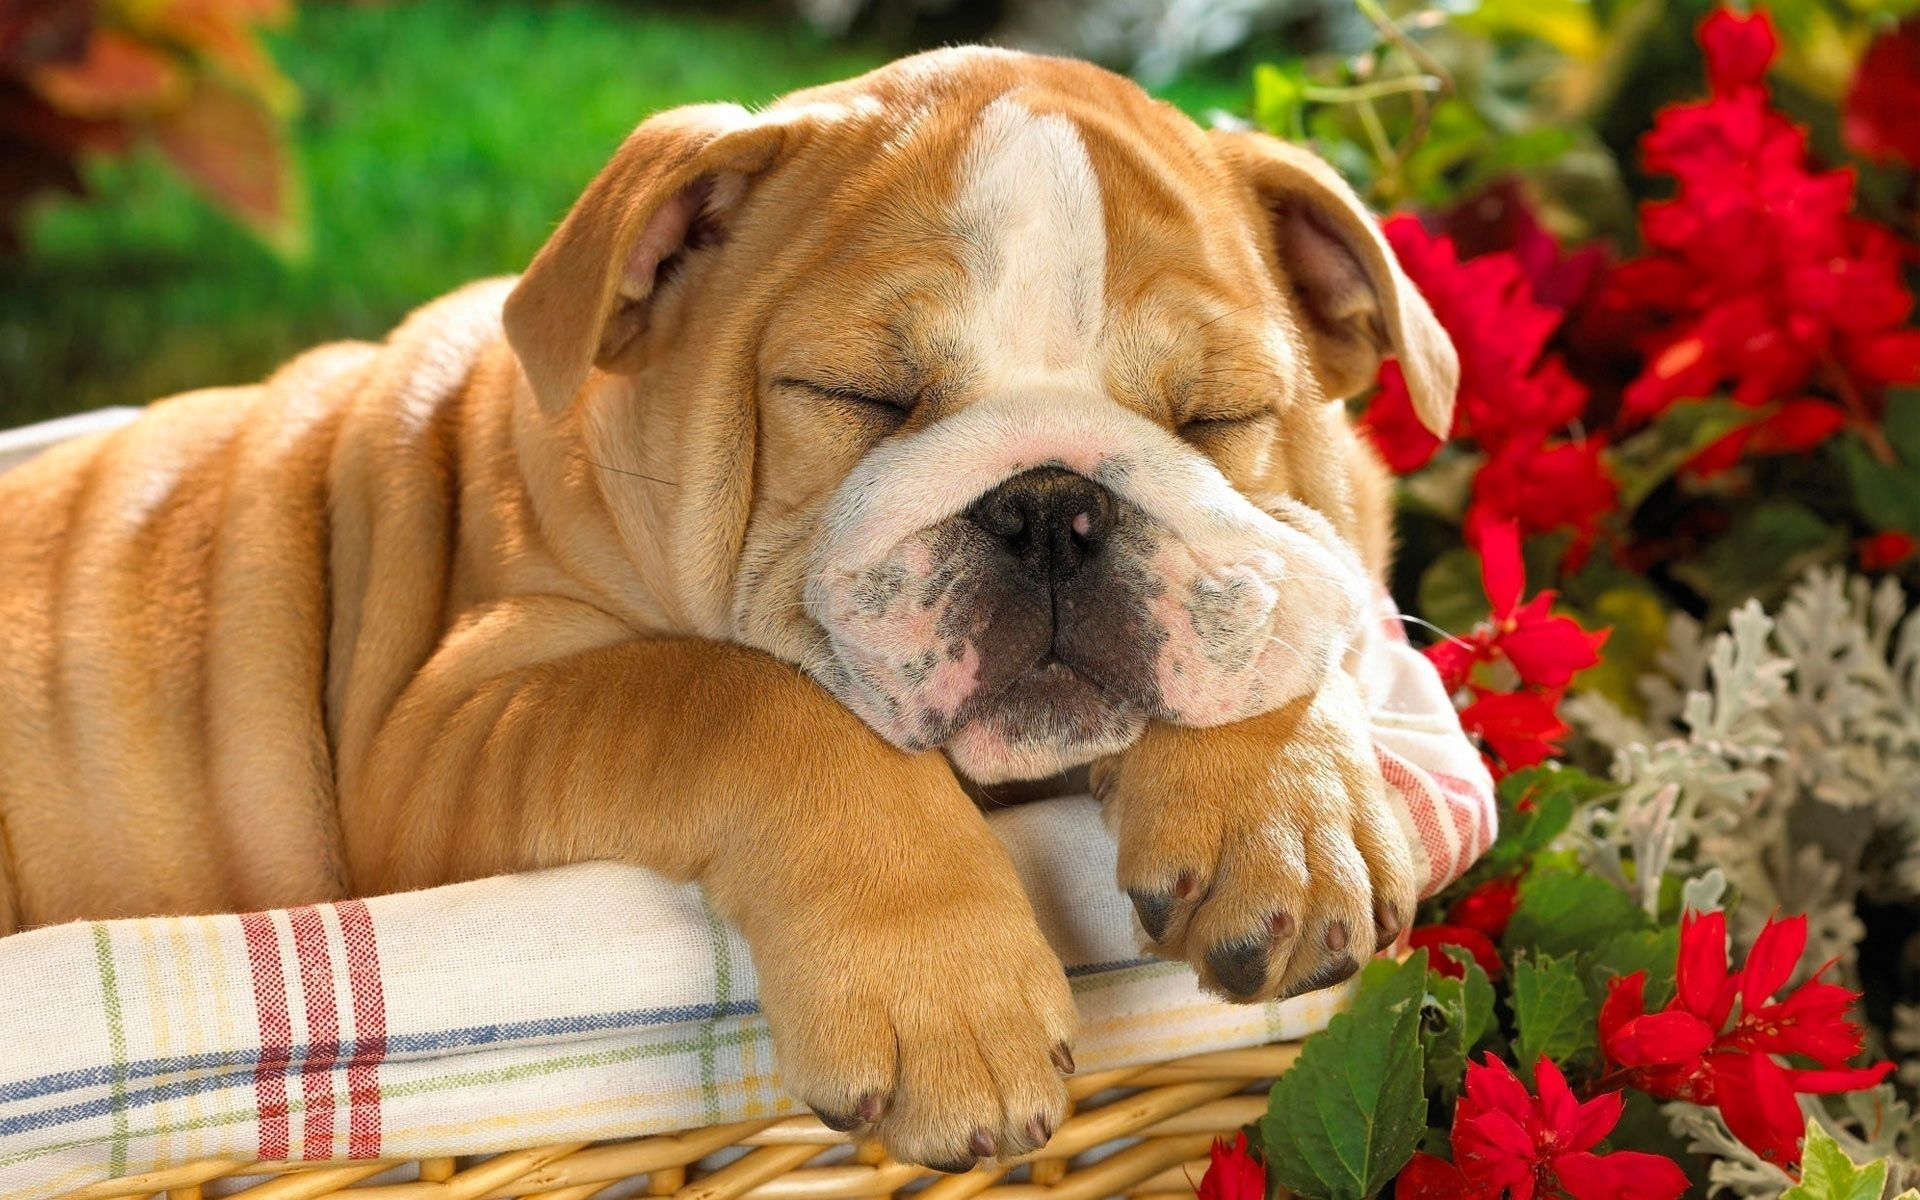 88850 download wallpaper Animals, English Bulldog, Puppy, Basket, Dog screensavers and pictures for free